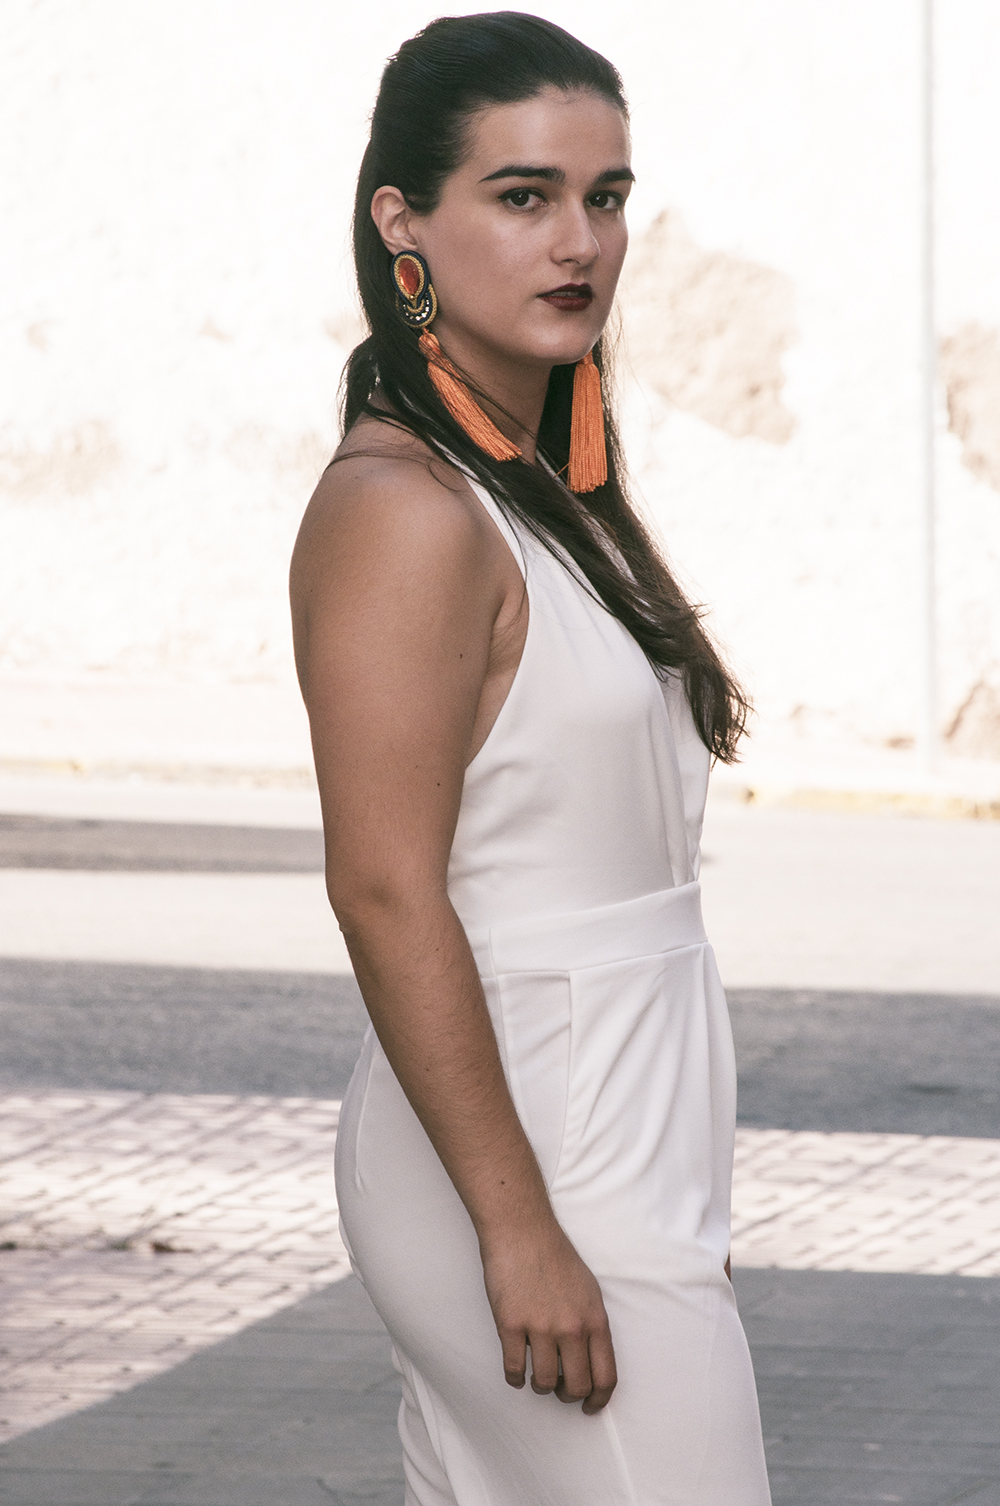 something fashion blogger influencer streetstyle spain valencia outfits summer jumpsuit graduation university_0667